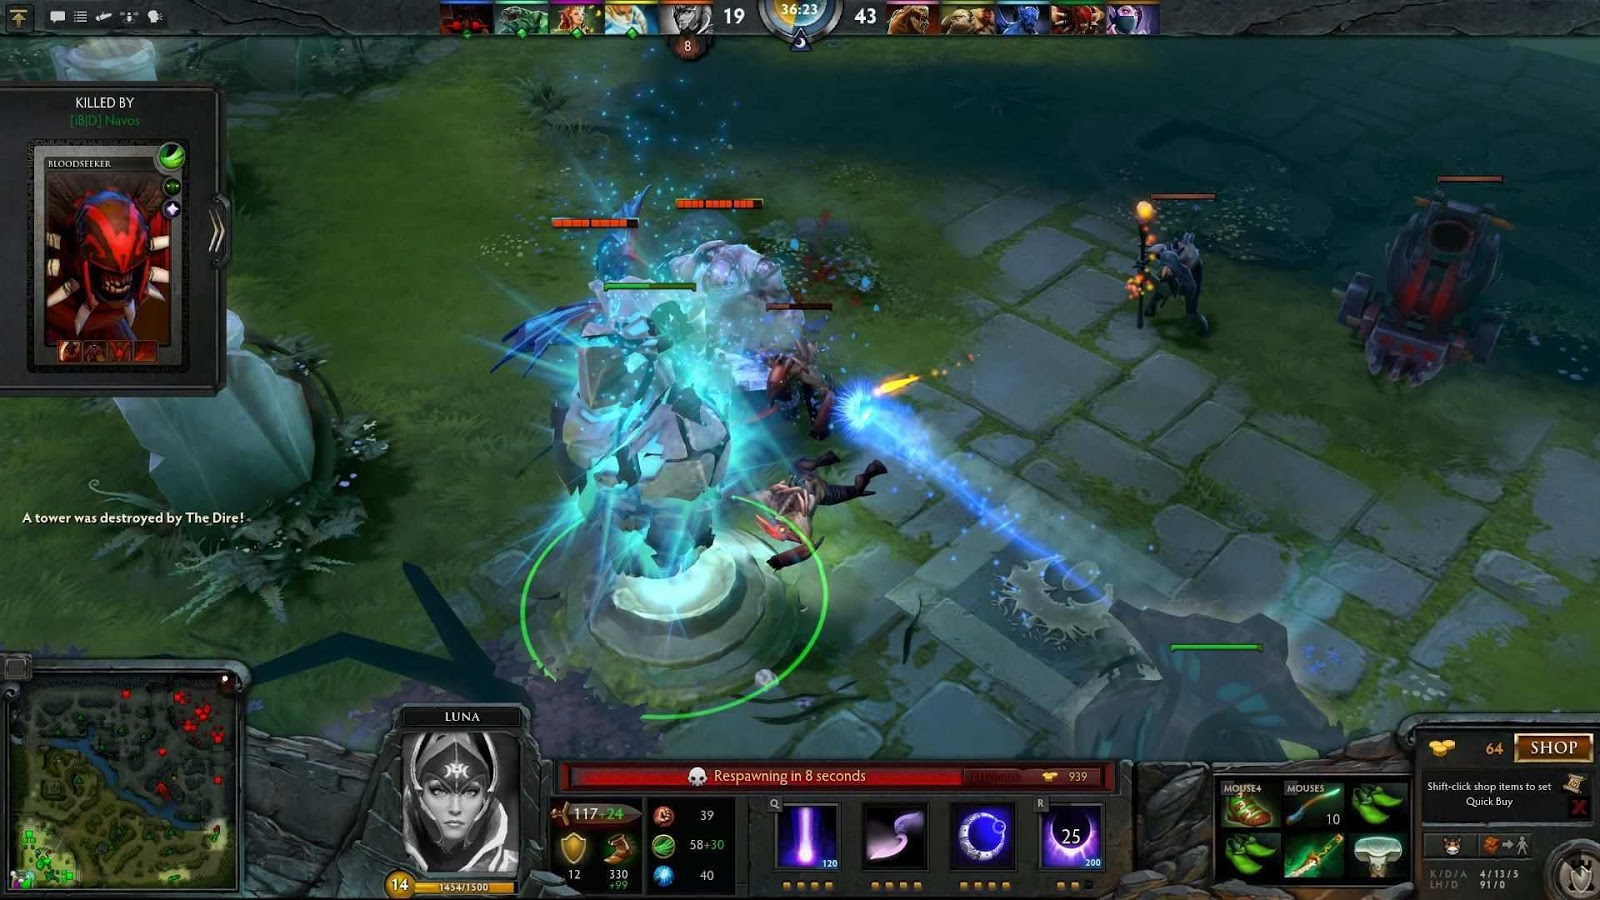 download game pc gratis dota 2 full version the power of sport